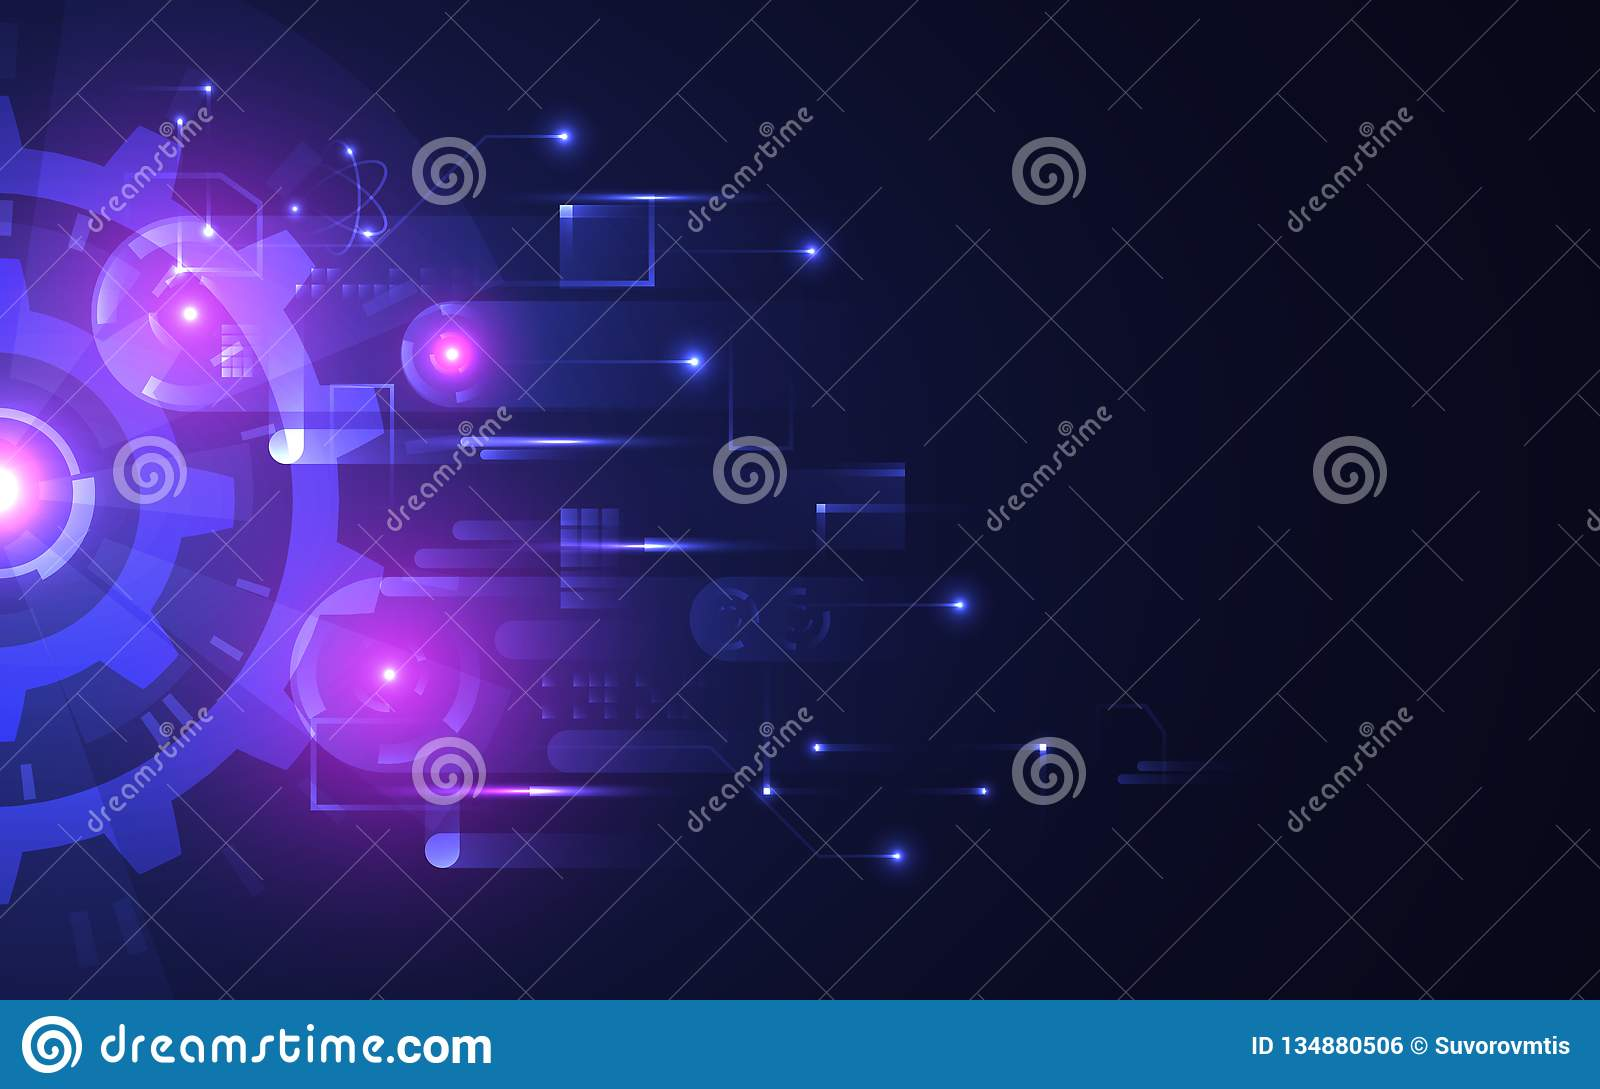 Abstract technology background. Futuristic glowing gears on dark backdrop. Hi-tech concept with bright connections